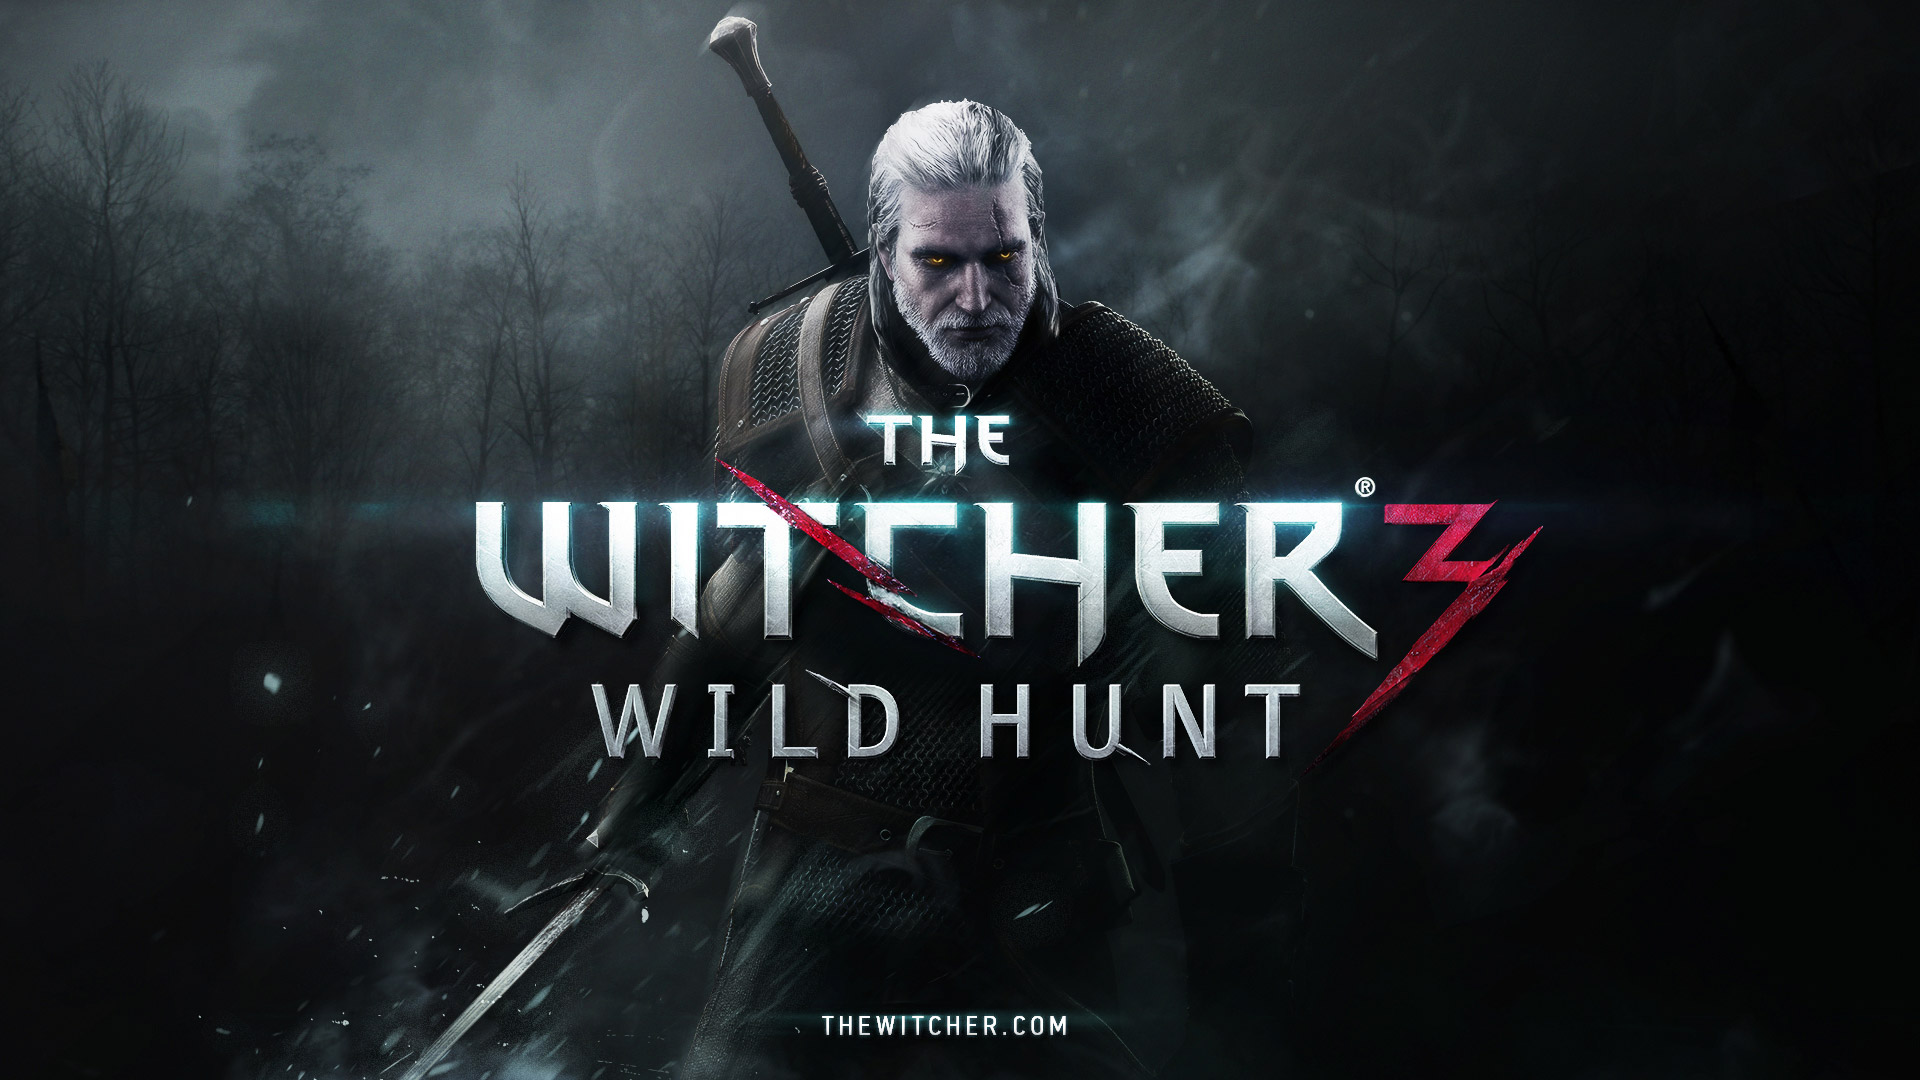 The Witcher 3 wallpaper 21